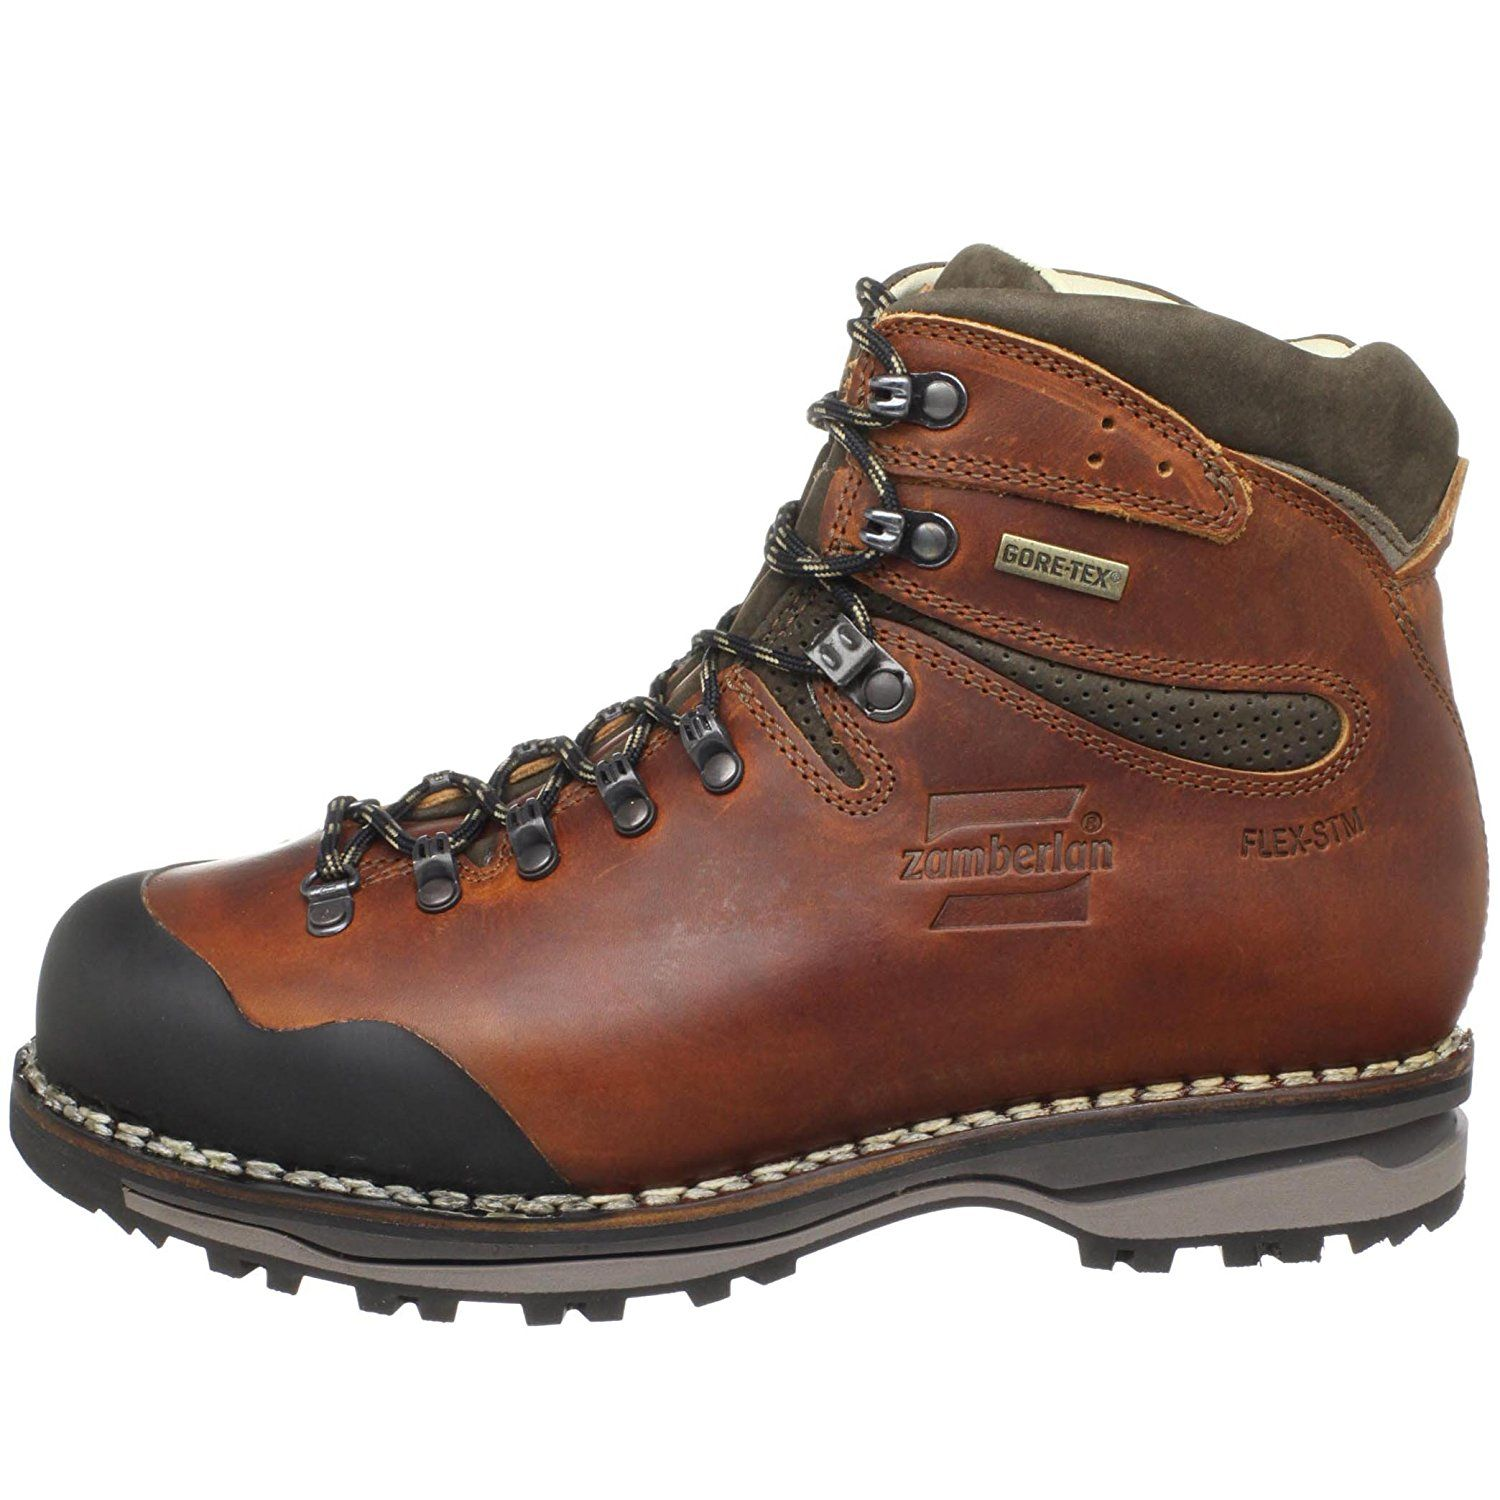 1025 Tofane NW GT RR Hiking Boot